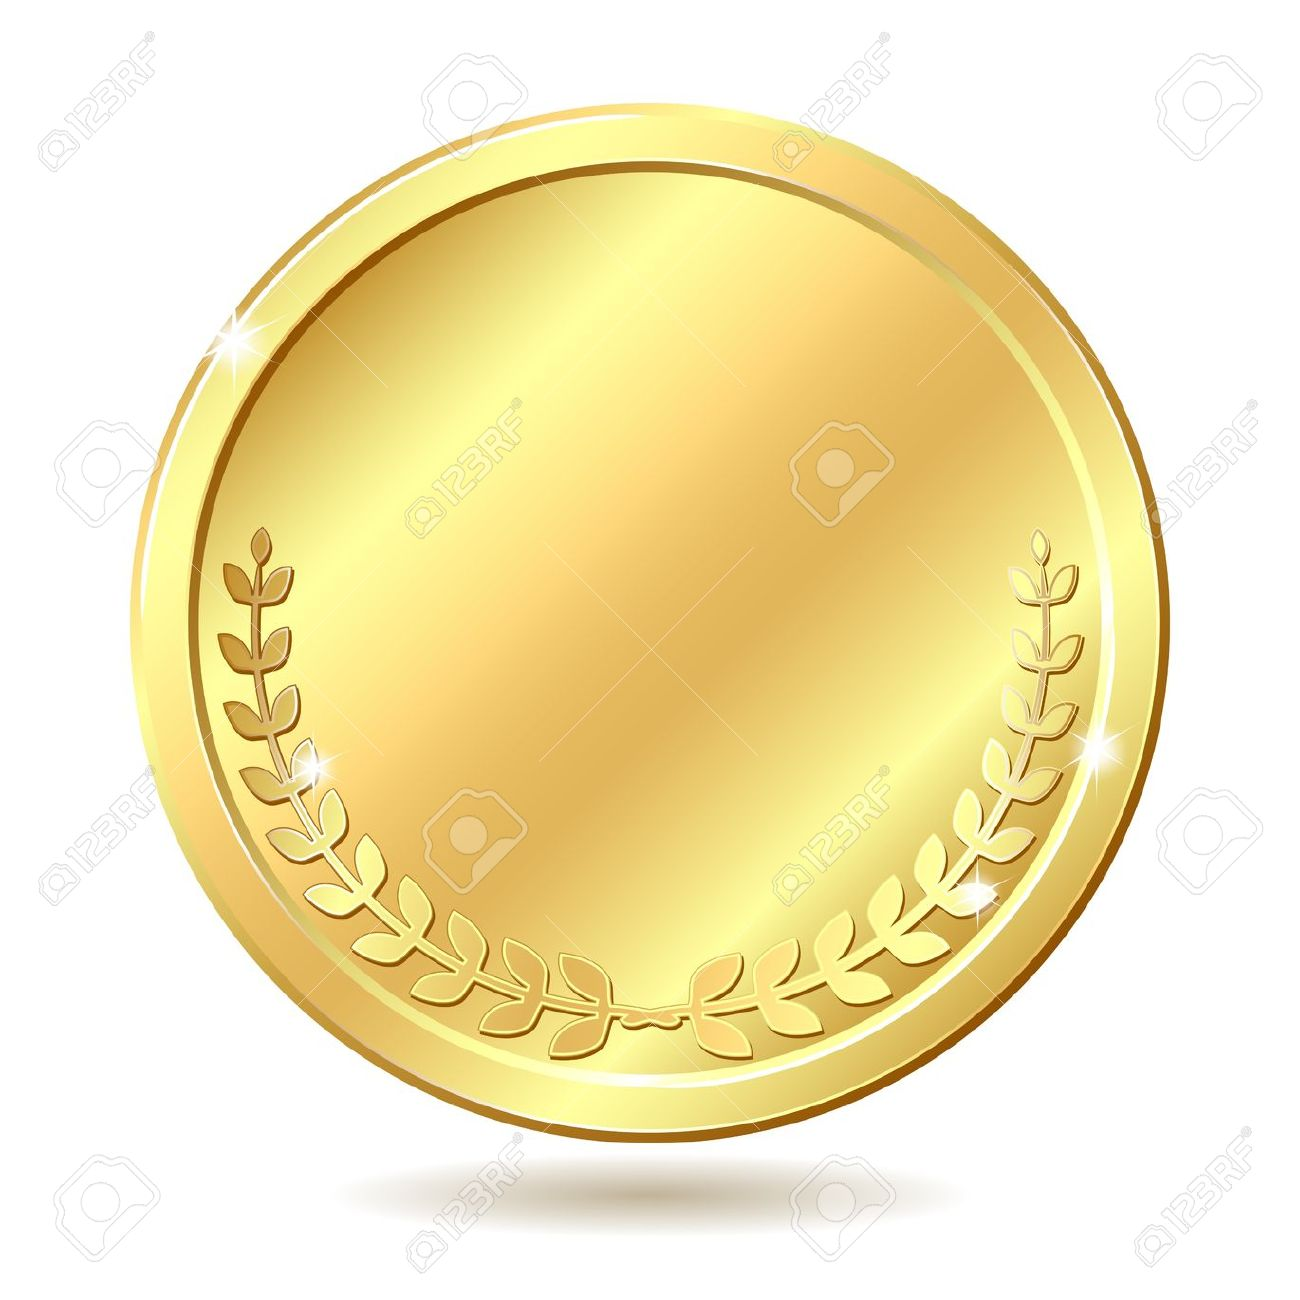 Gold Coin Clipart No Background.